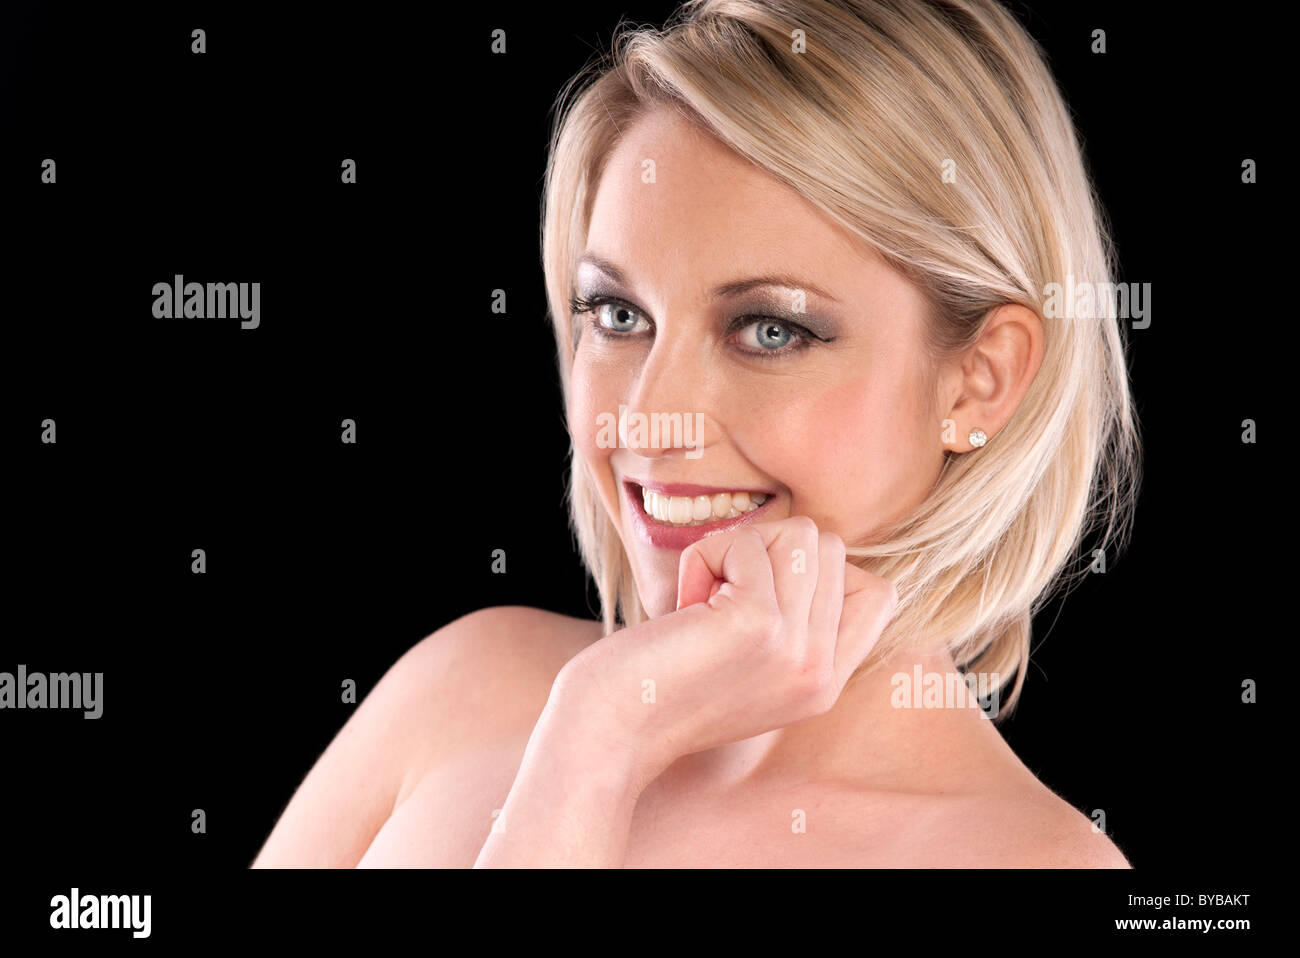 blonde woman smiling with her hand up to her chin - Stock Image